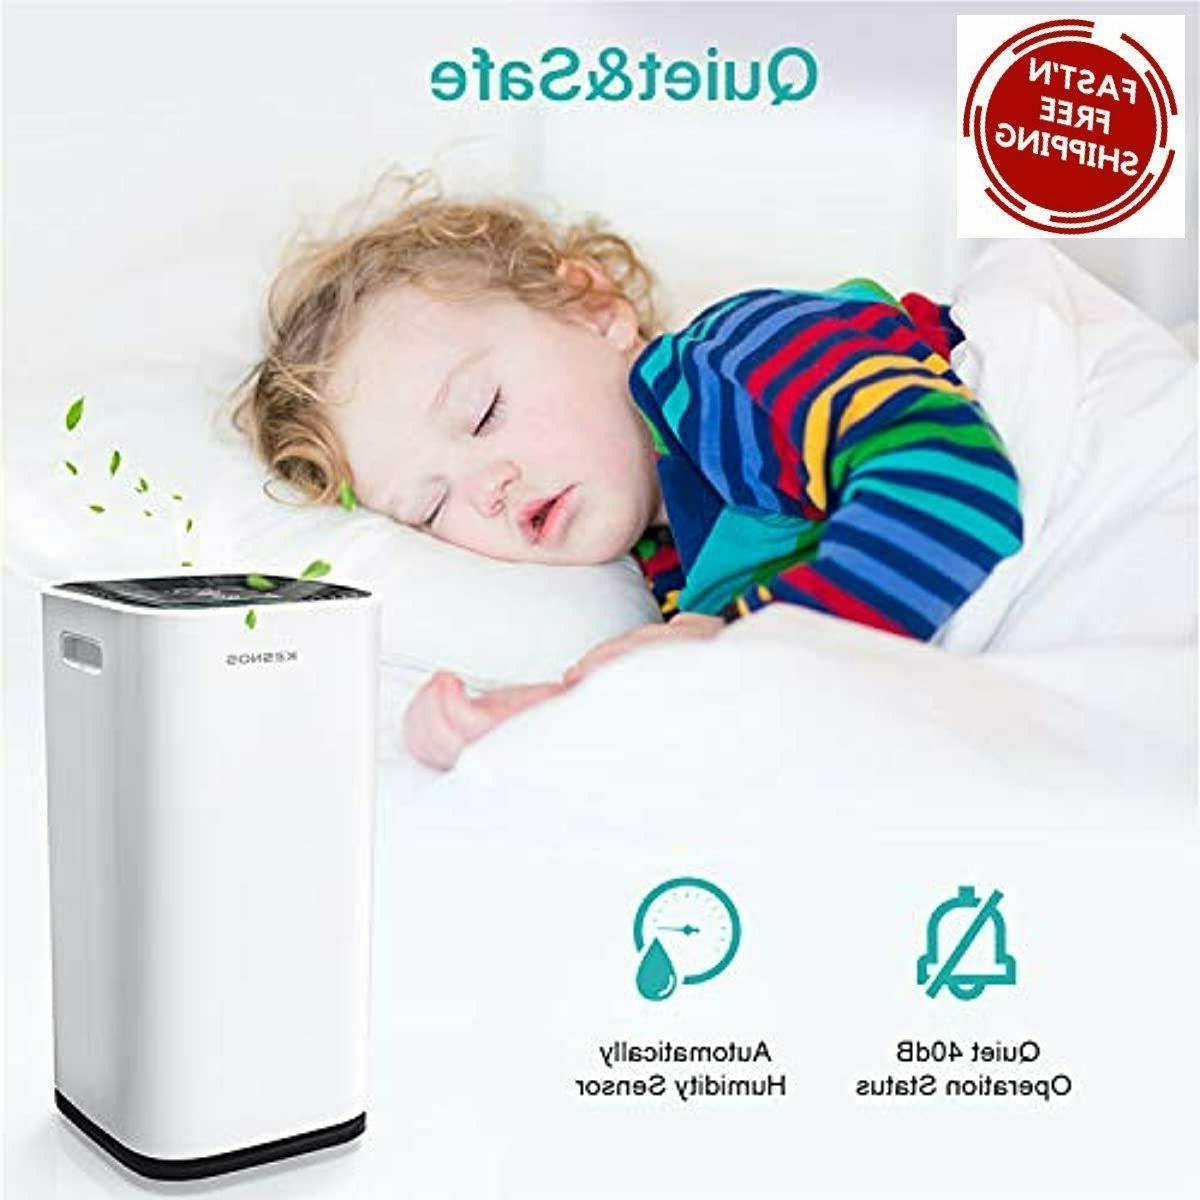 Kesnos 70 Pint dehumidifiers for Spaces 4500 Sq Home and